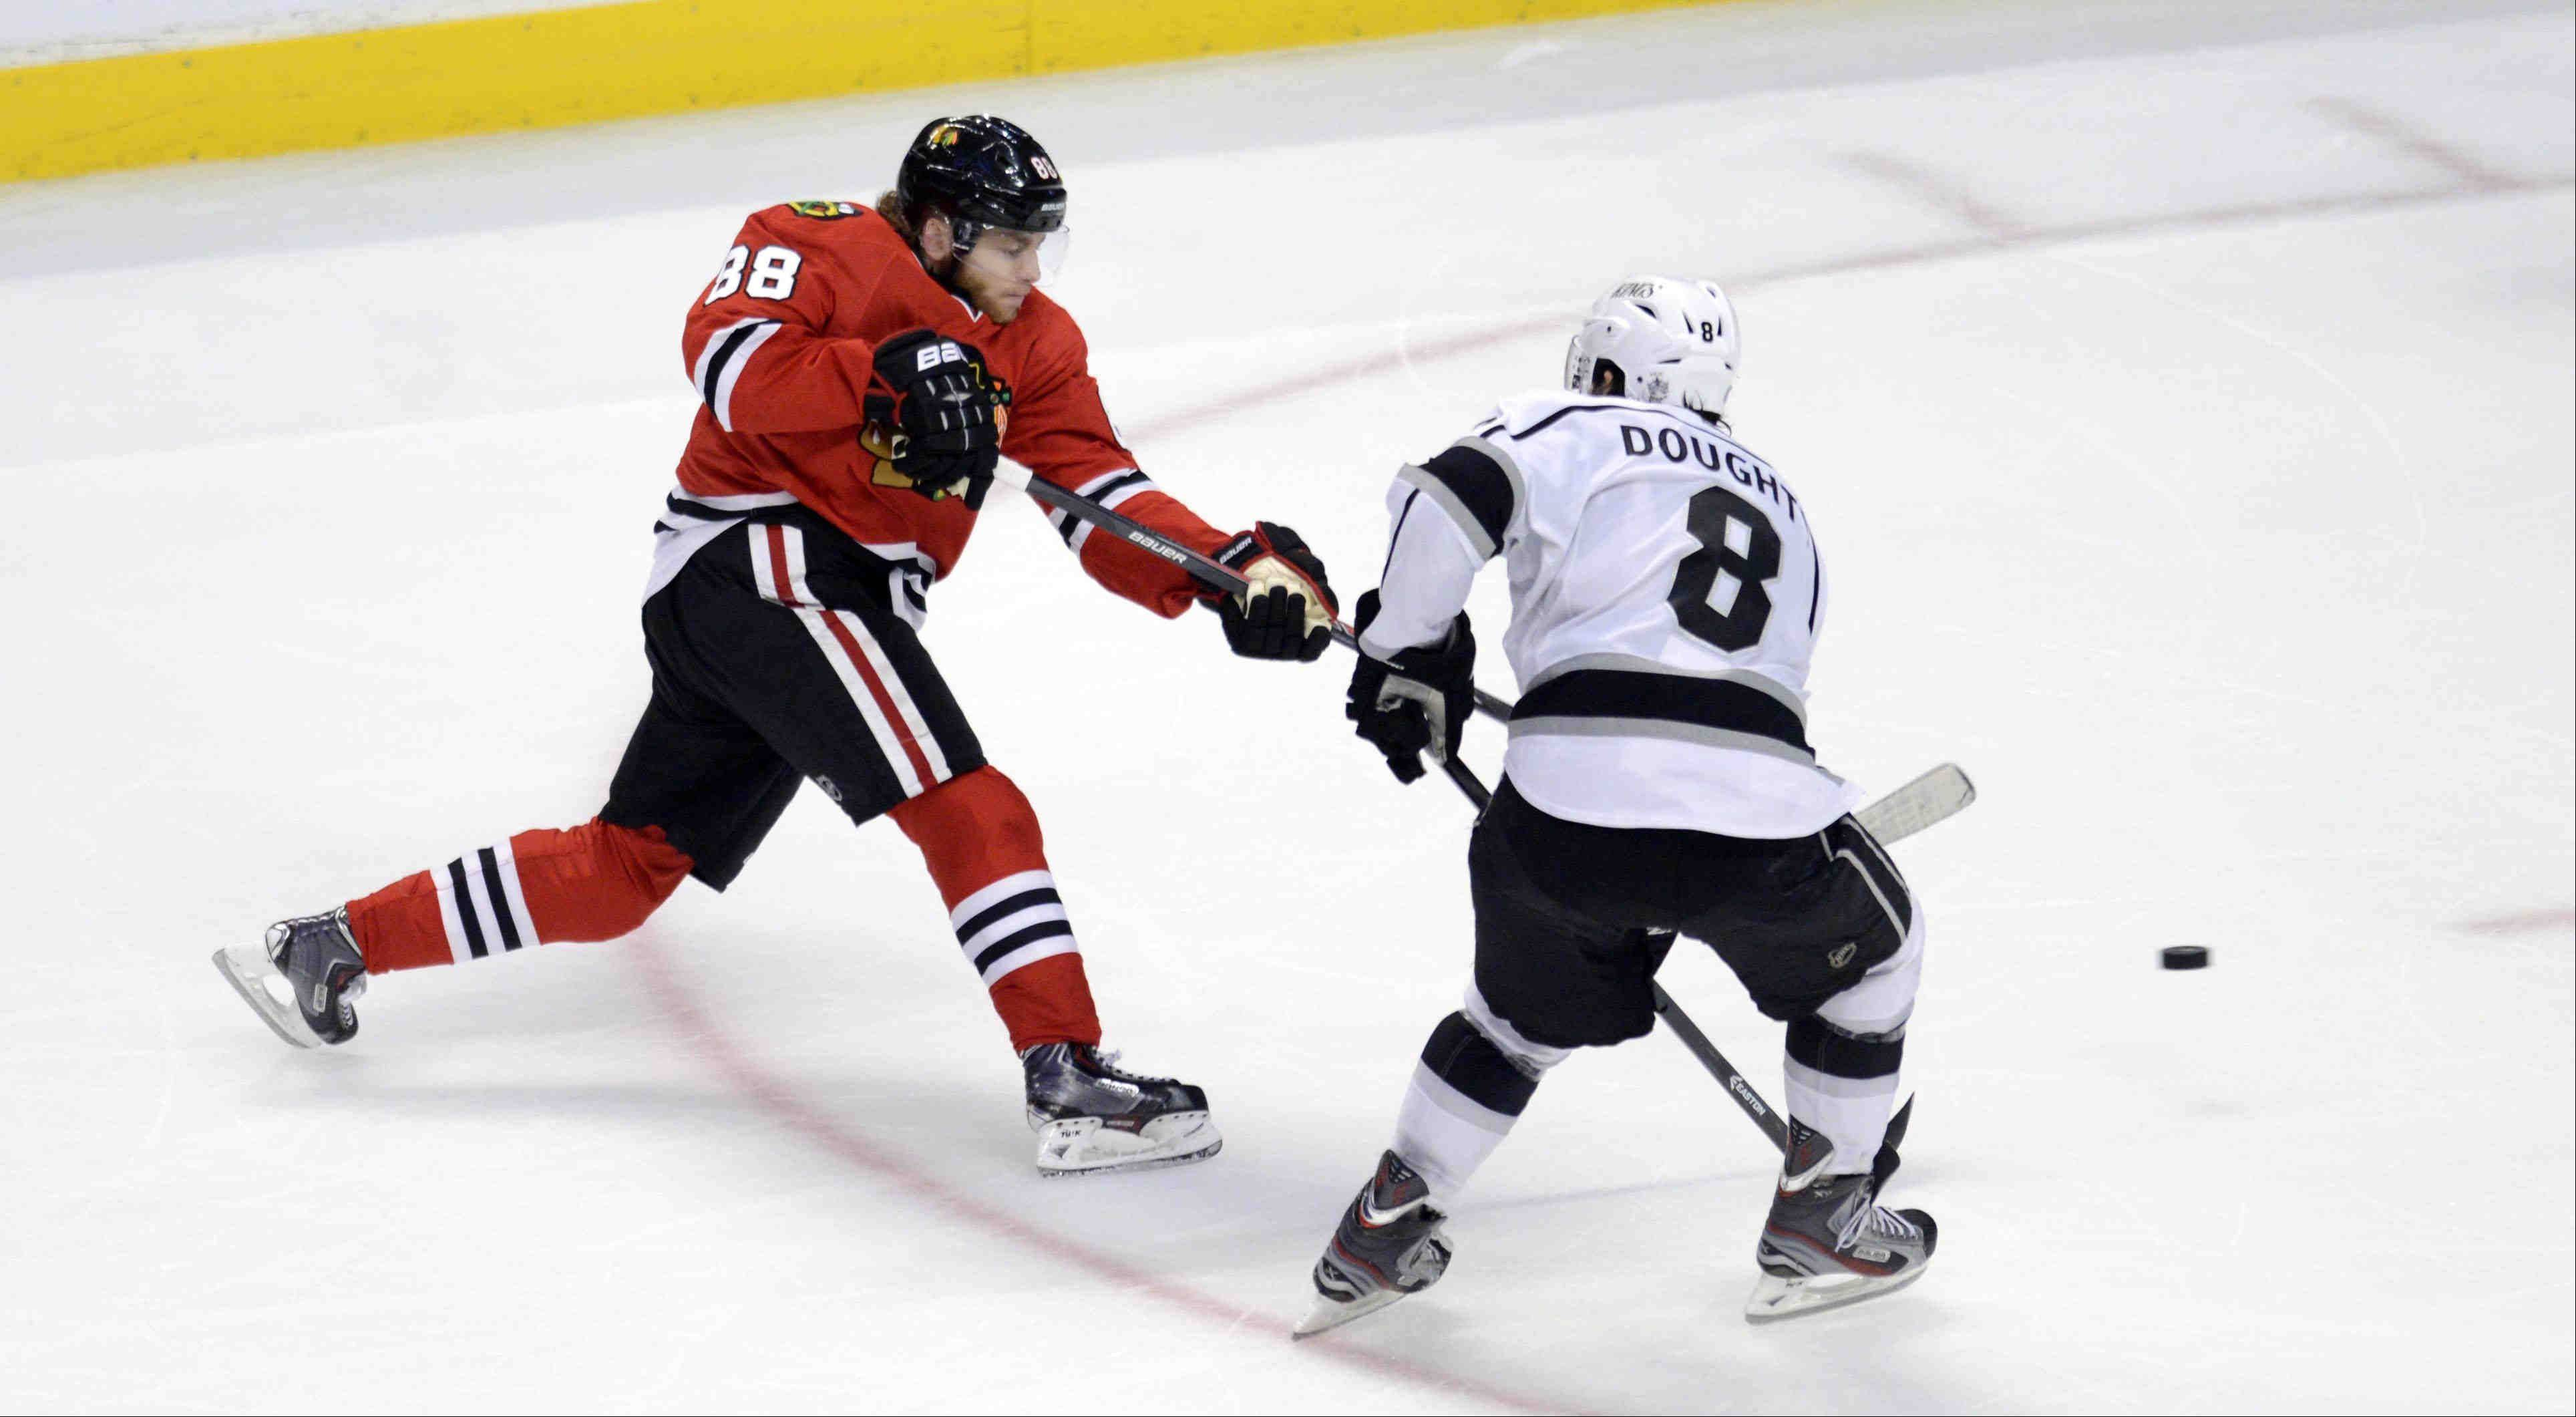 Chicago Blackhawks right wing Patrick Kane shoots in the second period against the defense of Los Angeles Kings defenseman Drew Doughty Saturday during the NHL Western Conference Finals Game 5 at the United Center in Chicago.